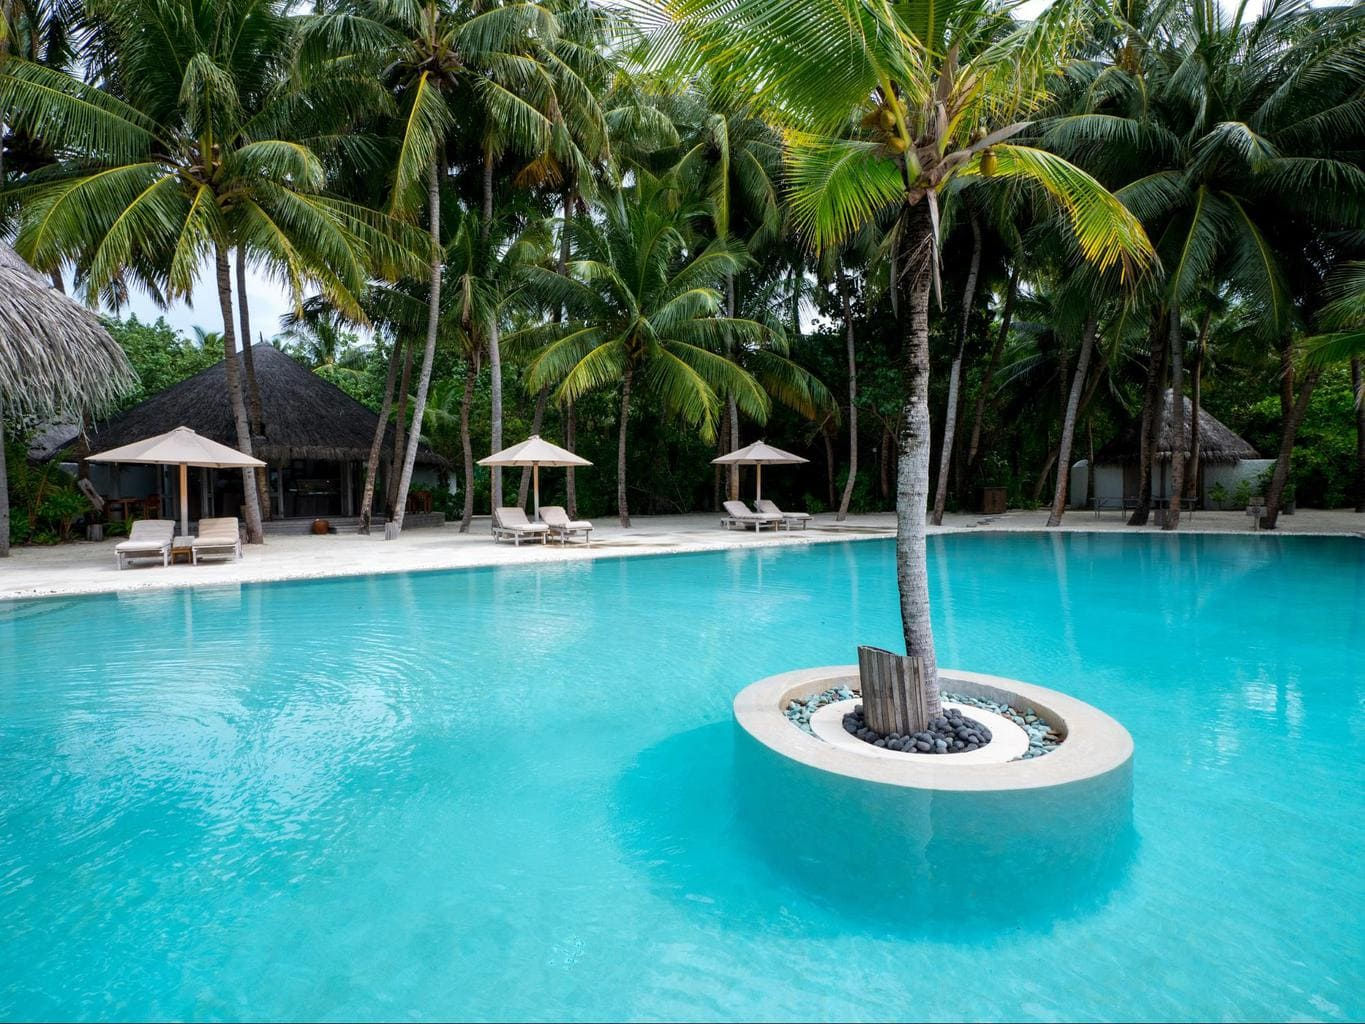 The shared pool at Gili Lankanfushi